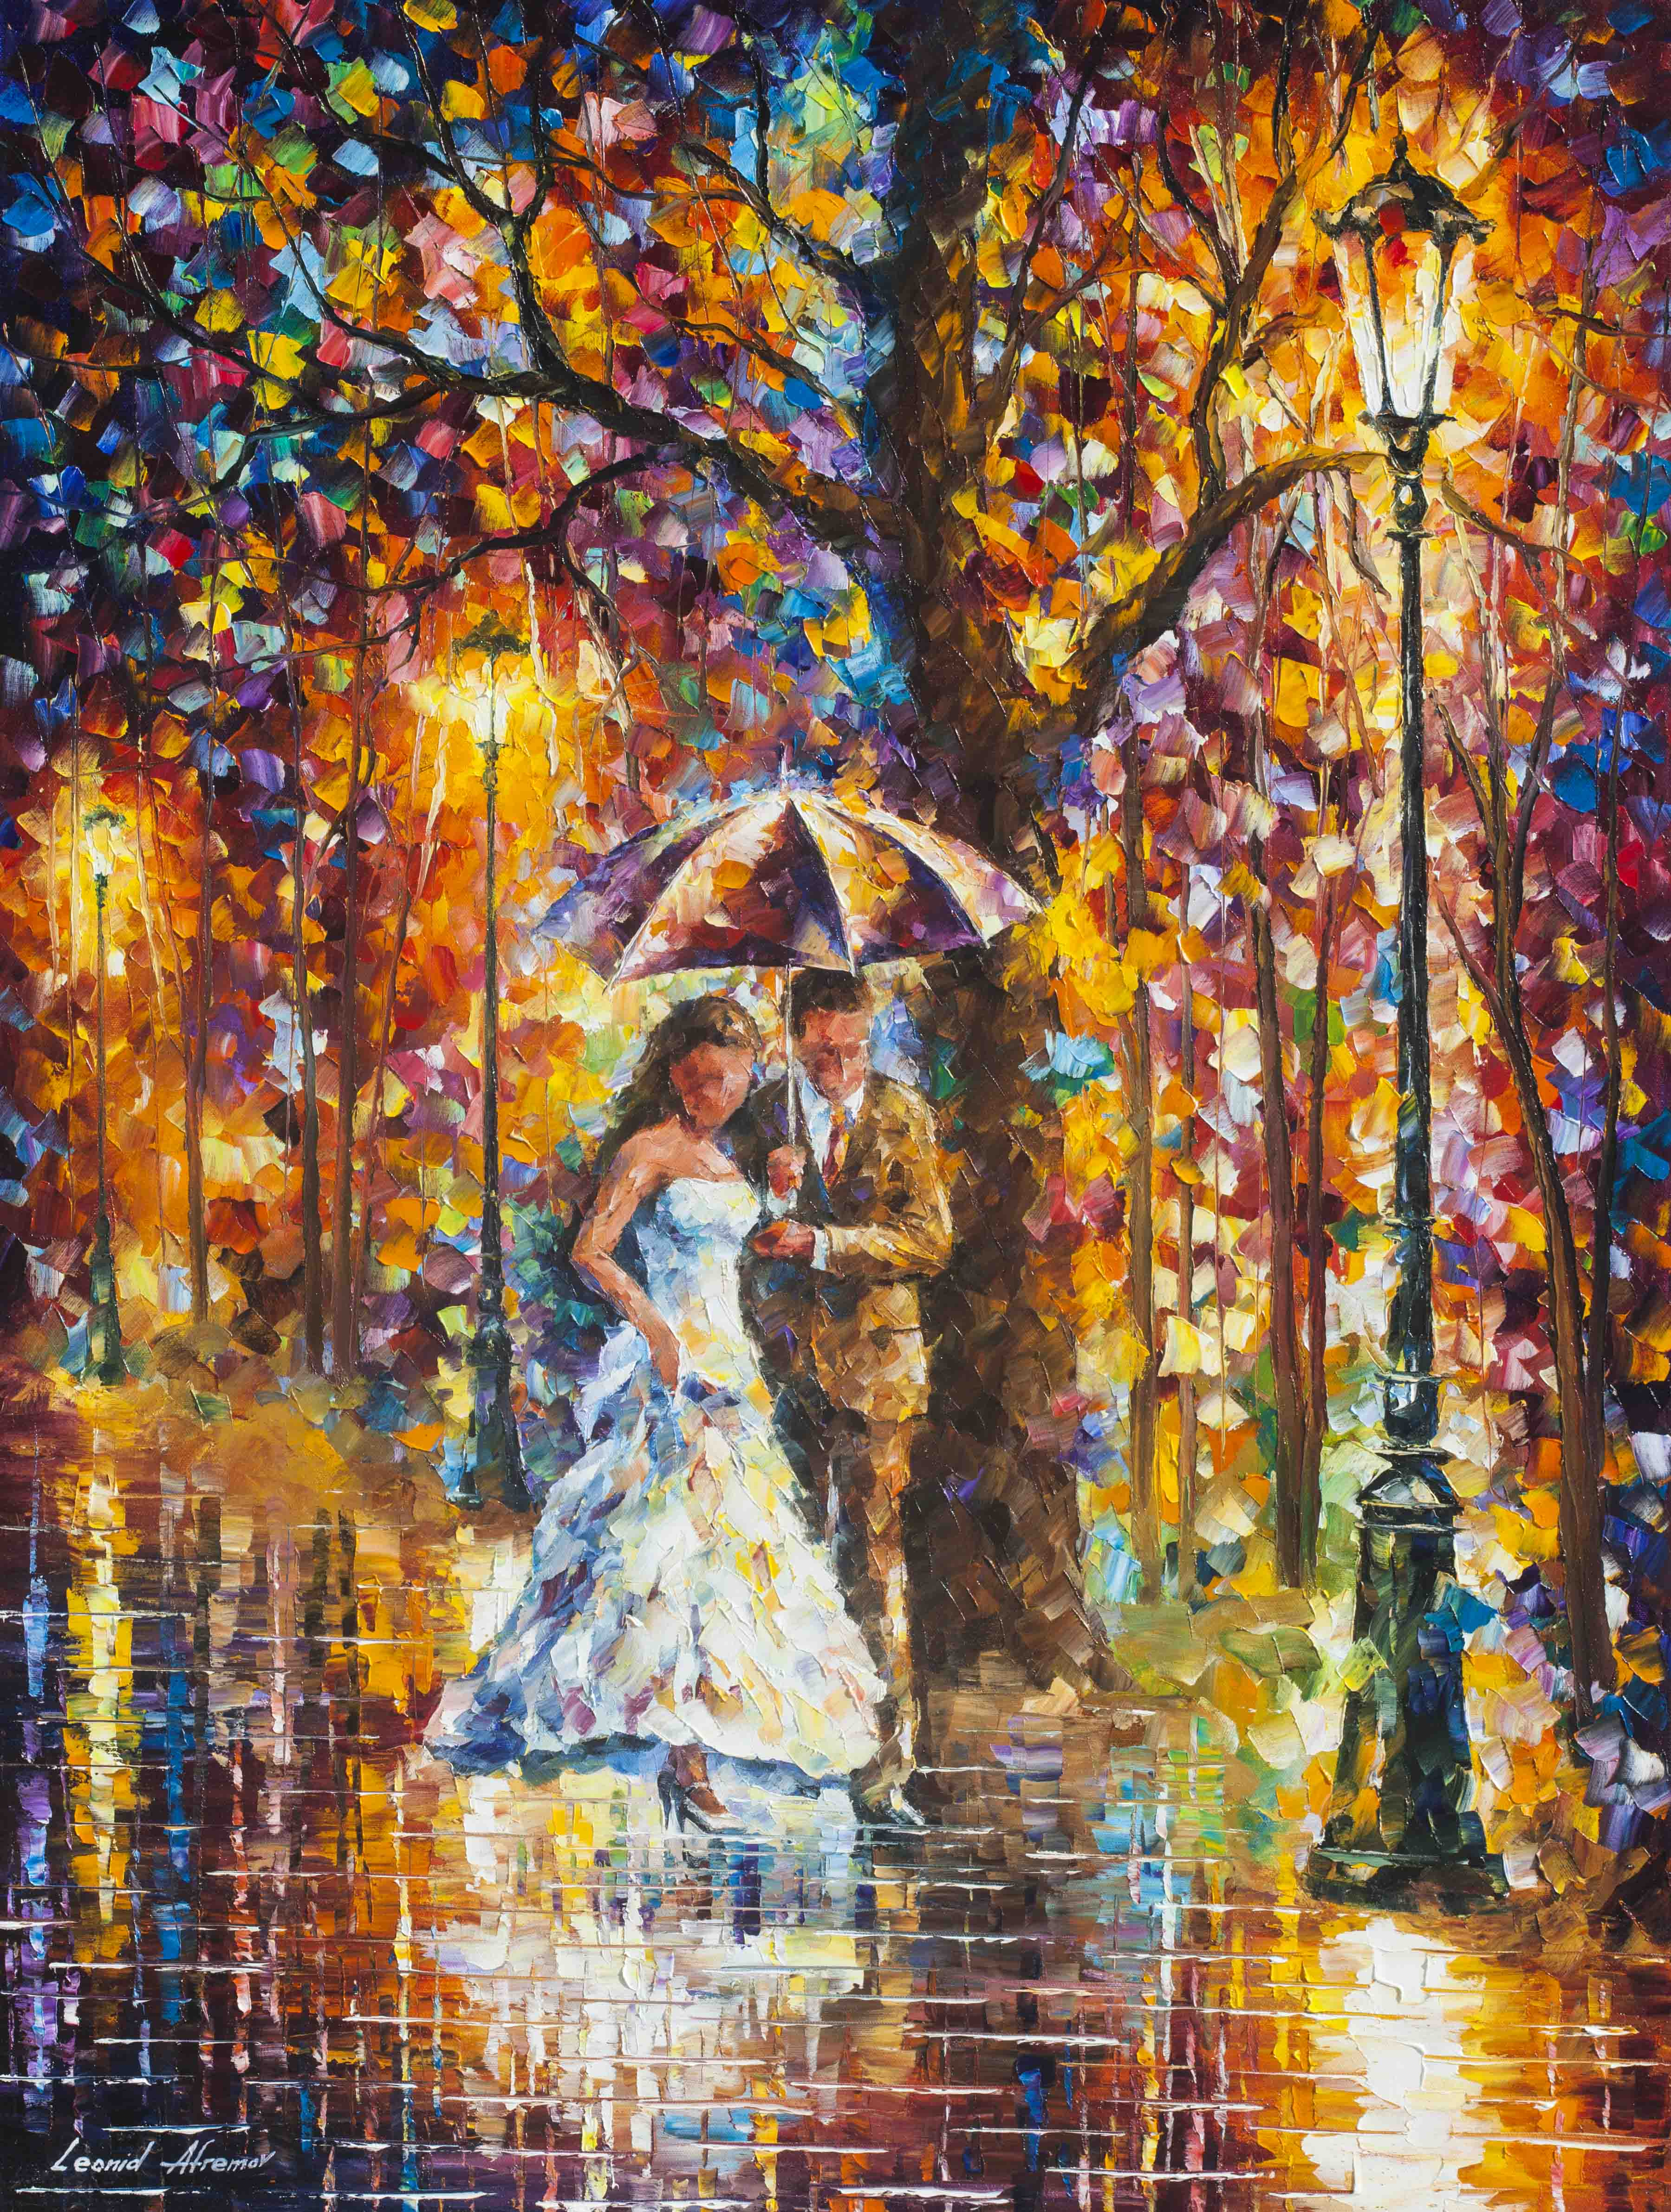 "DREAM WEDDING -  PALETTE KNIFE Oil Painting On Canvas By Leonid Afremov - Size 30""x40""  (75cm x 100cm) (offer)"